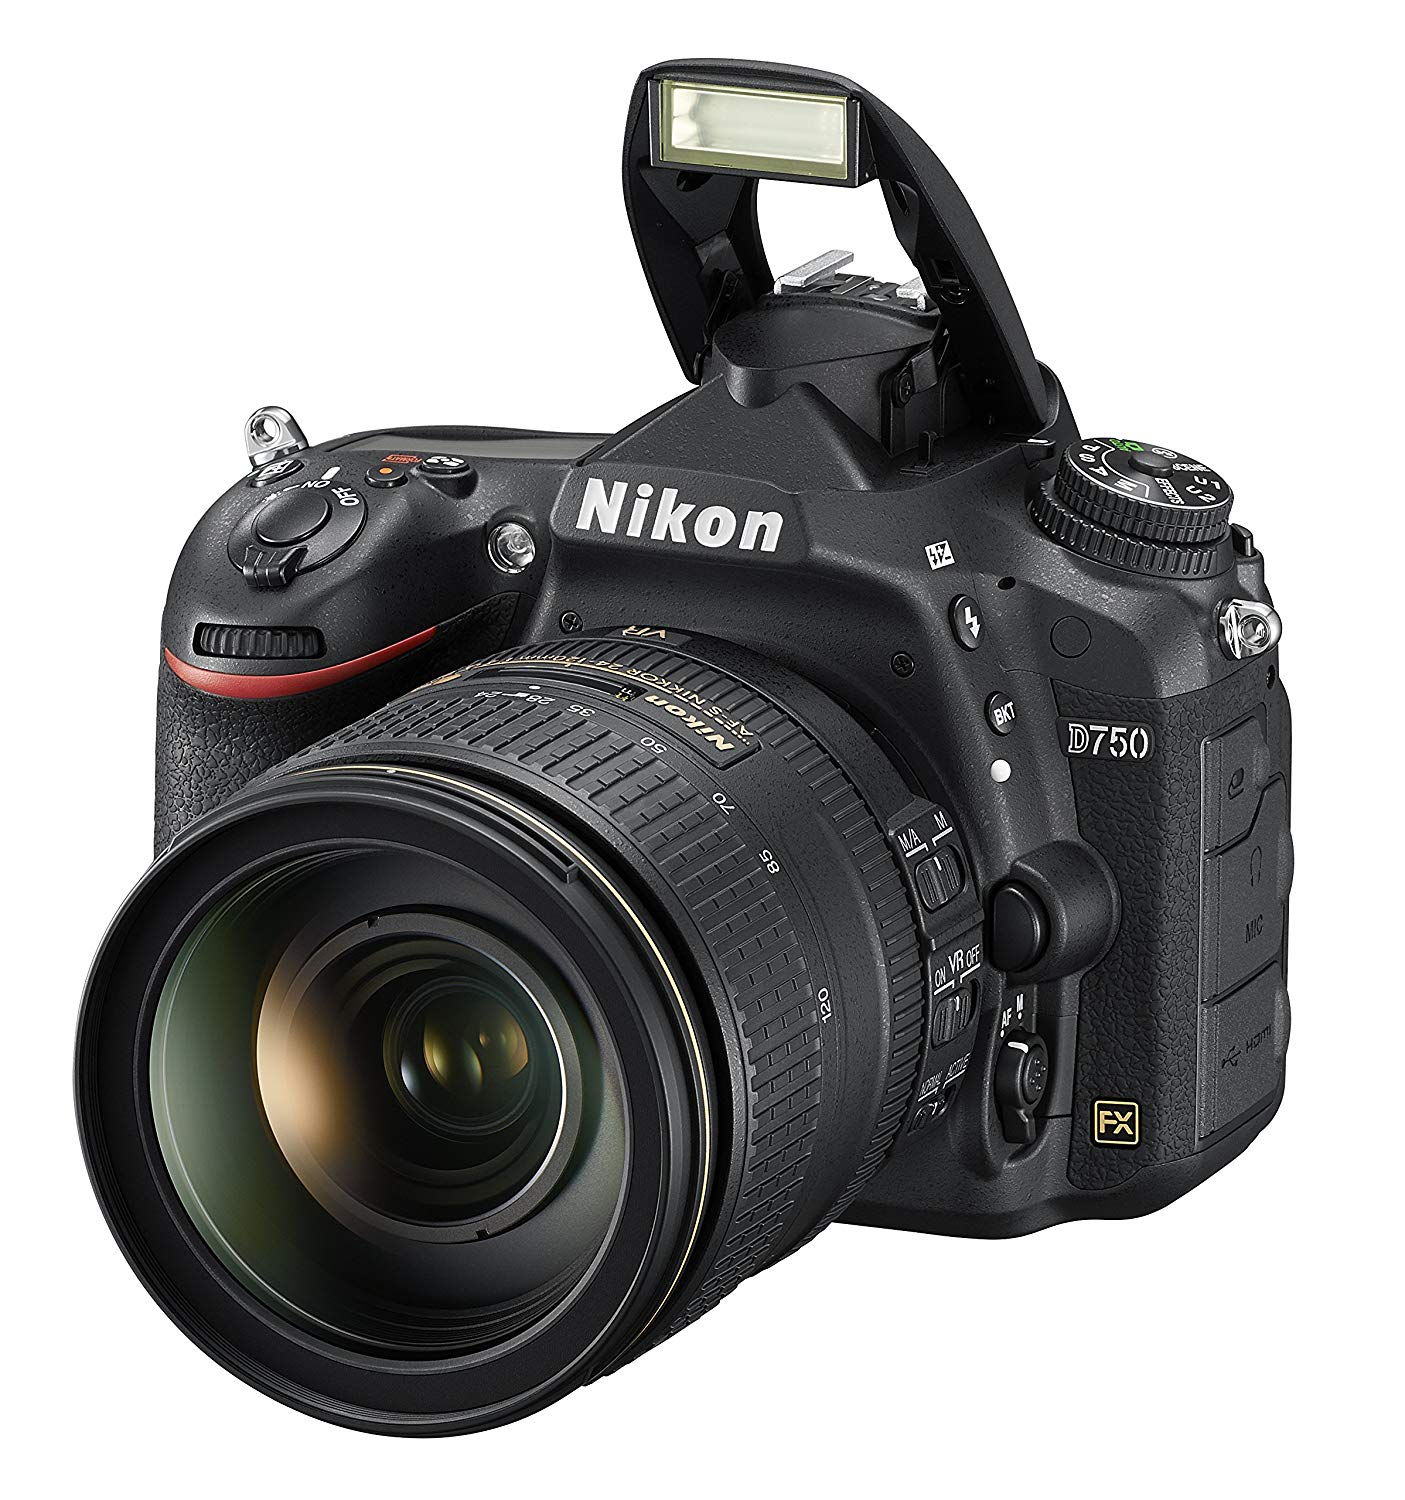 Nikon D750 DSLR Camera with 24-120mm Lens (Black)